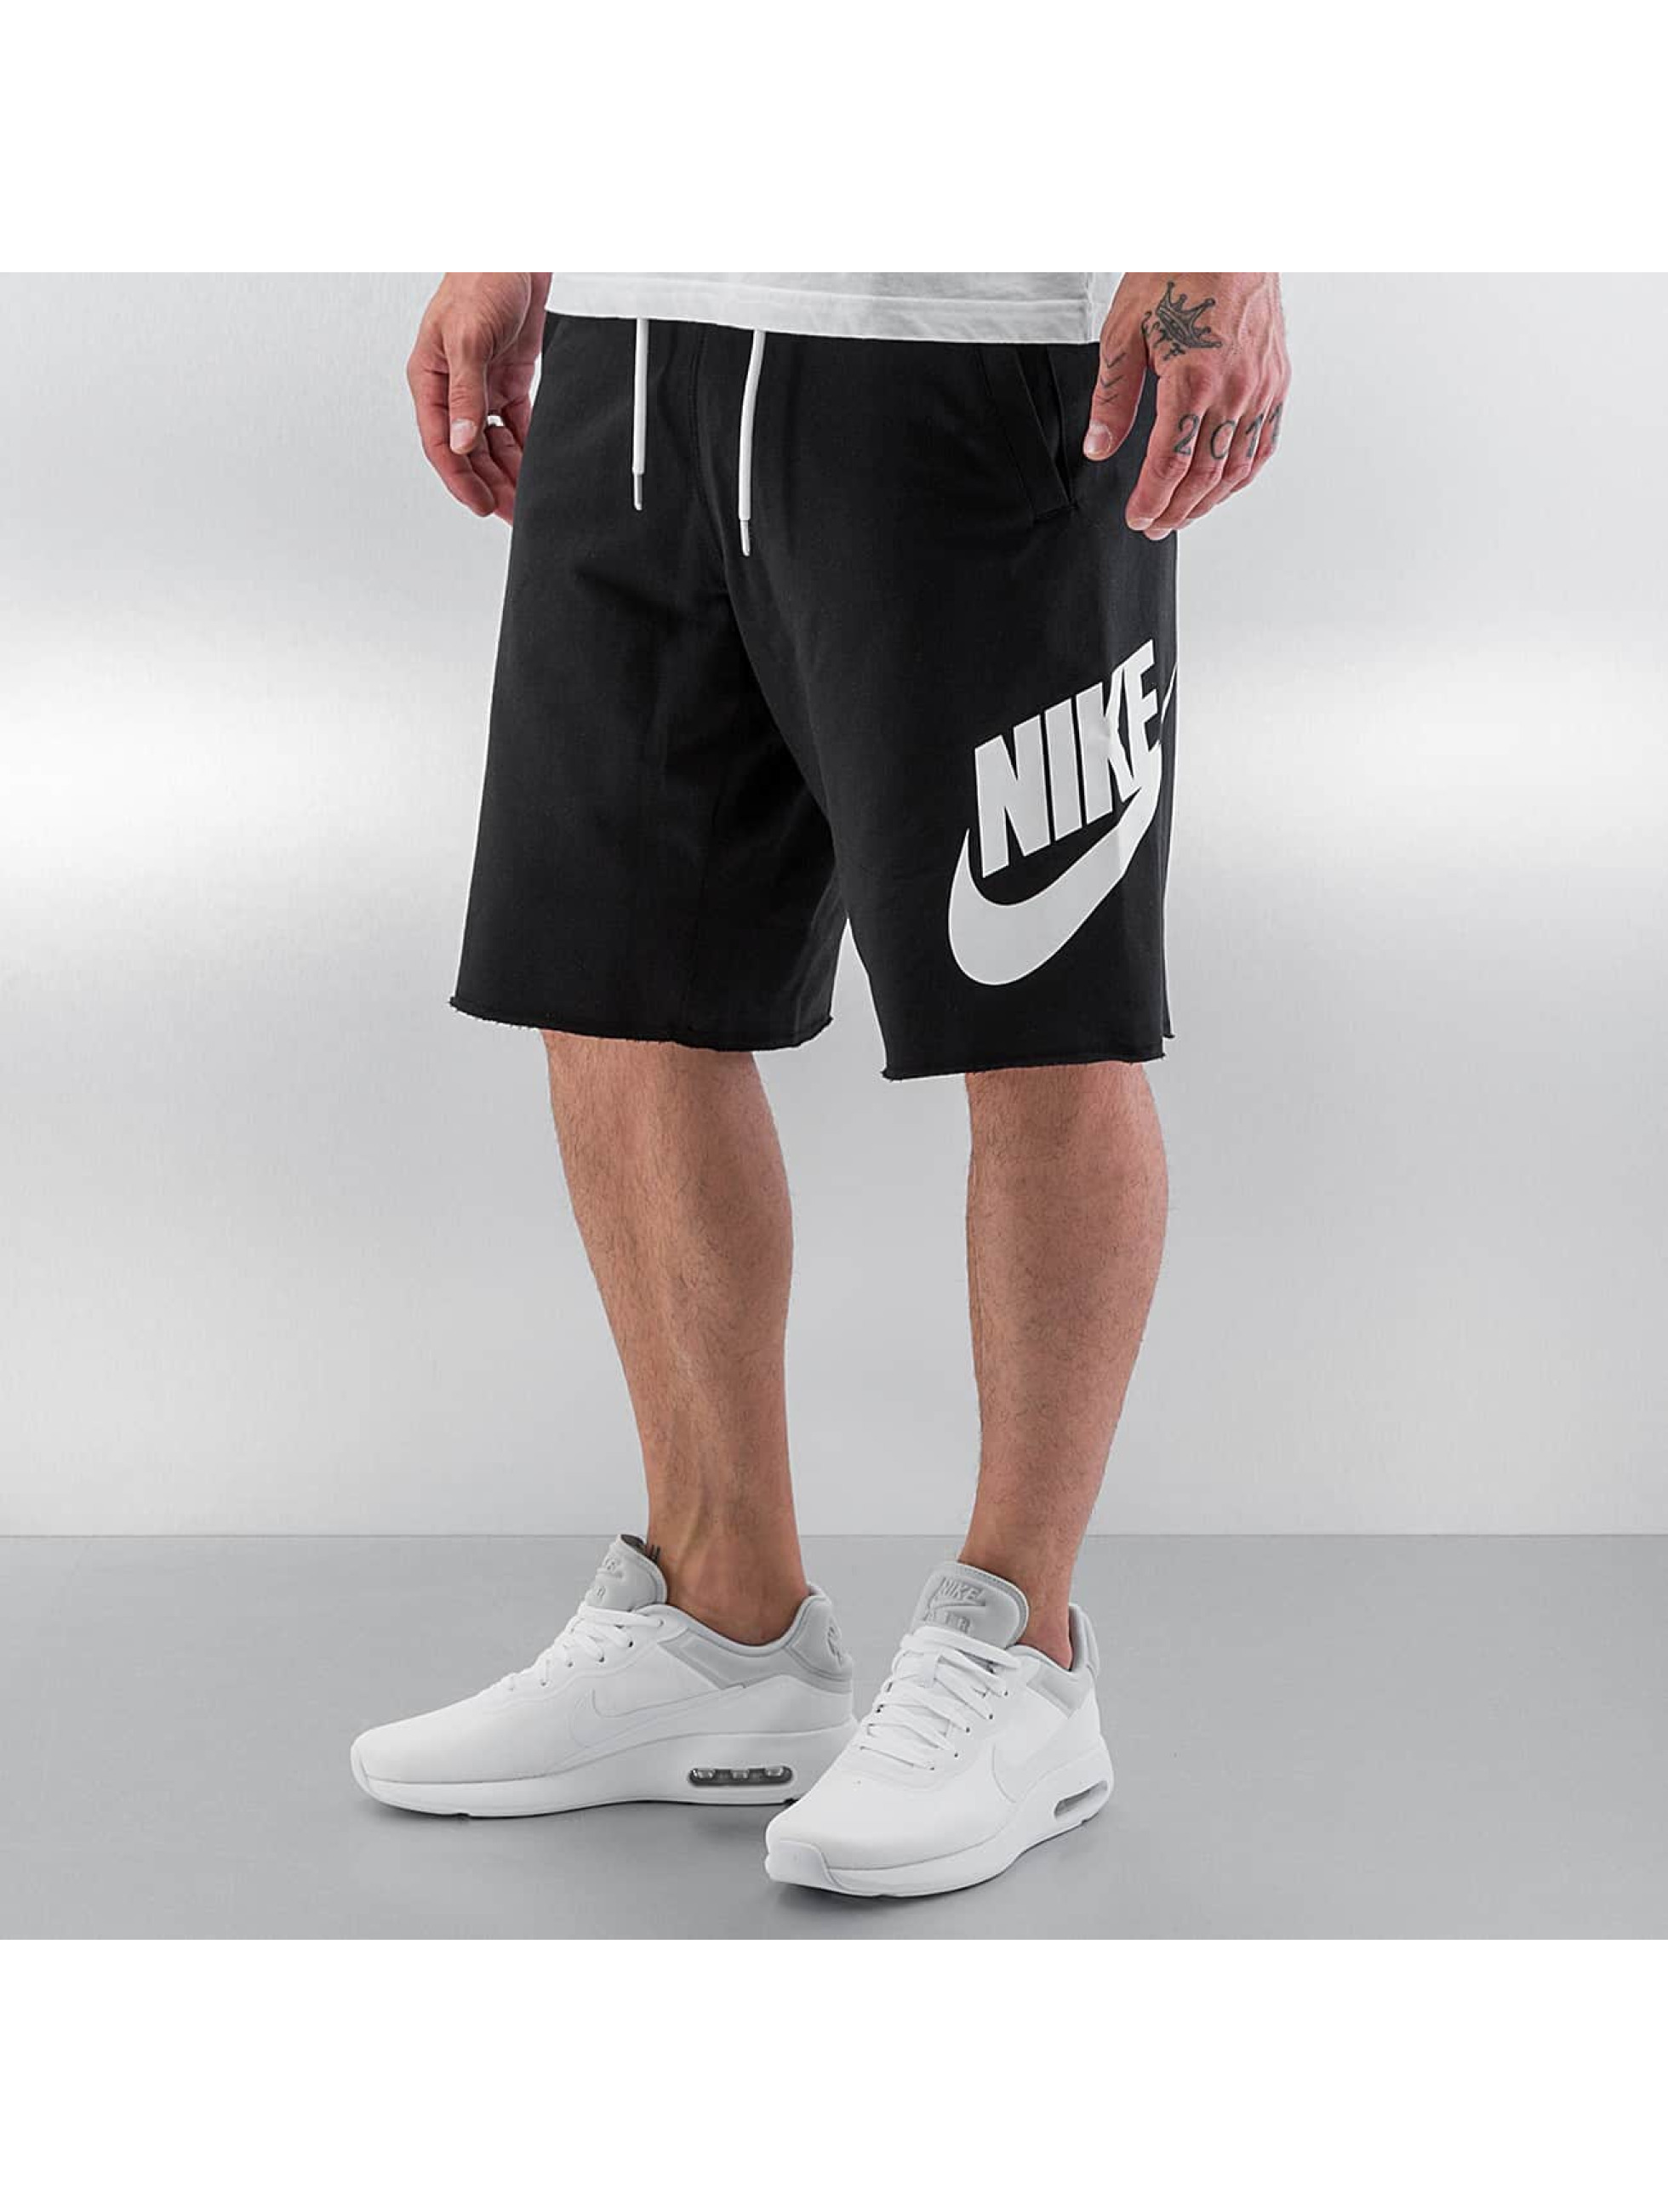 Nike NSW FT GX Shorts Black/White Sale Angebote Ruhland